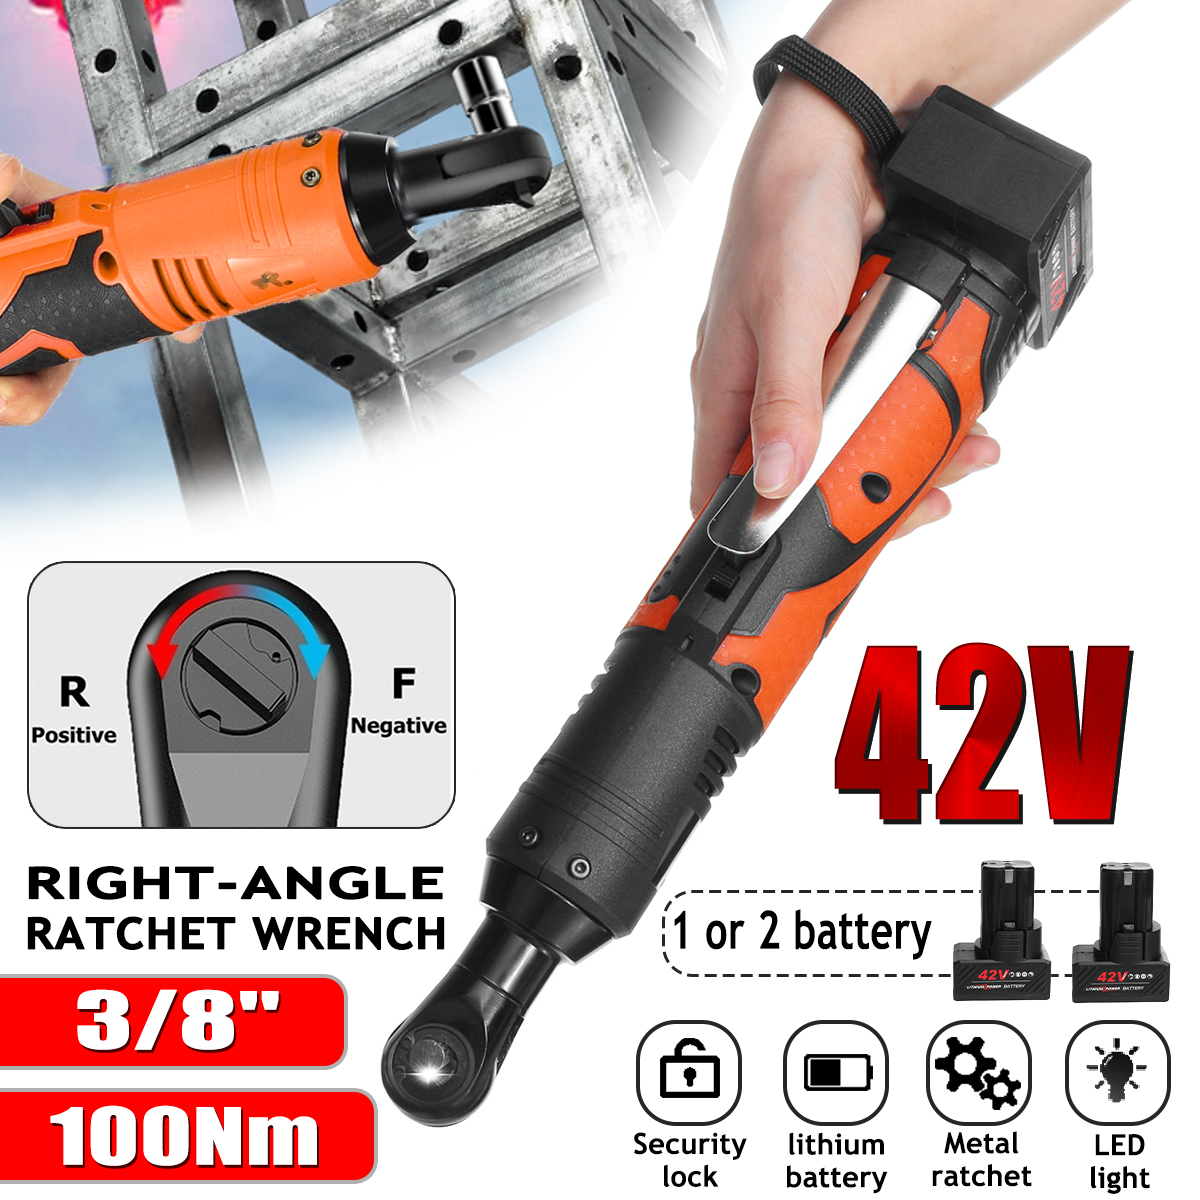 Efficient 42V Electric Wrench Angle Drill Screwdriver 3/8 Cordless Ratchet Wrench Scaffolding 100NM With 1/2 Lithium-Ion Battery